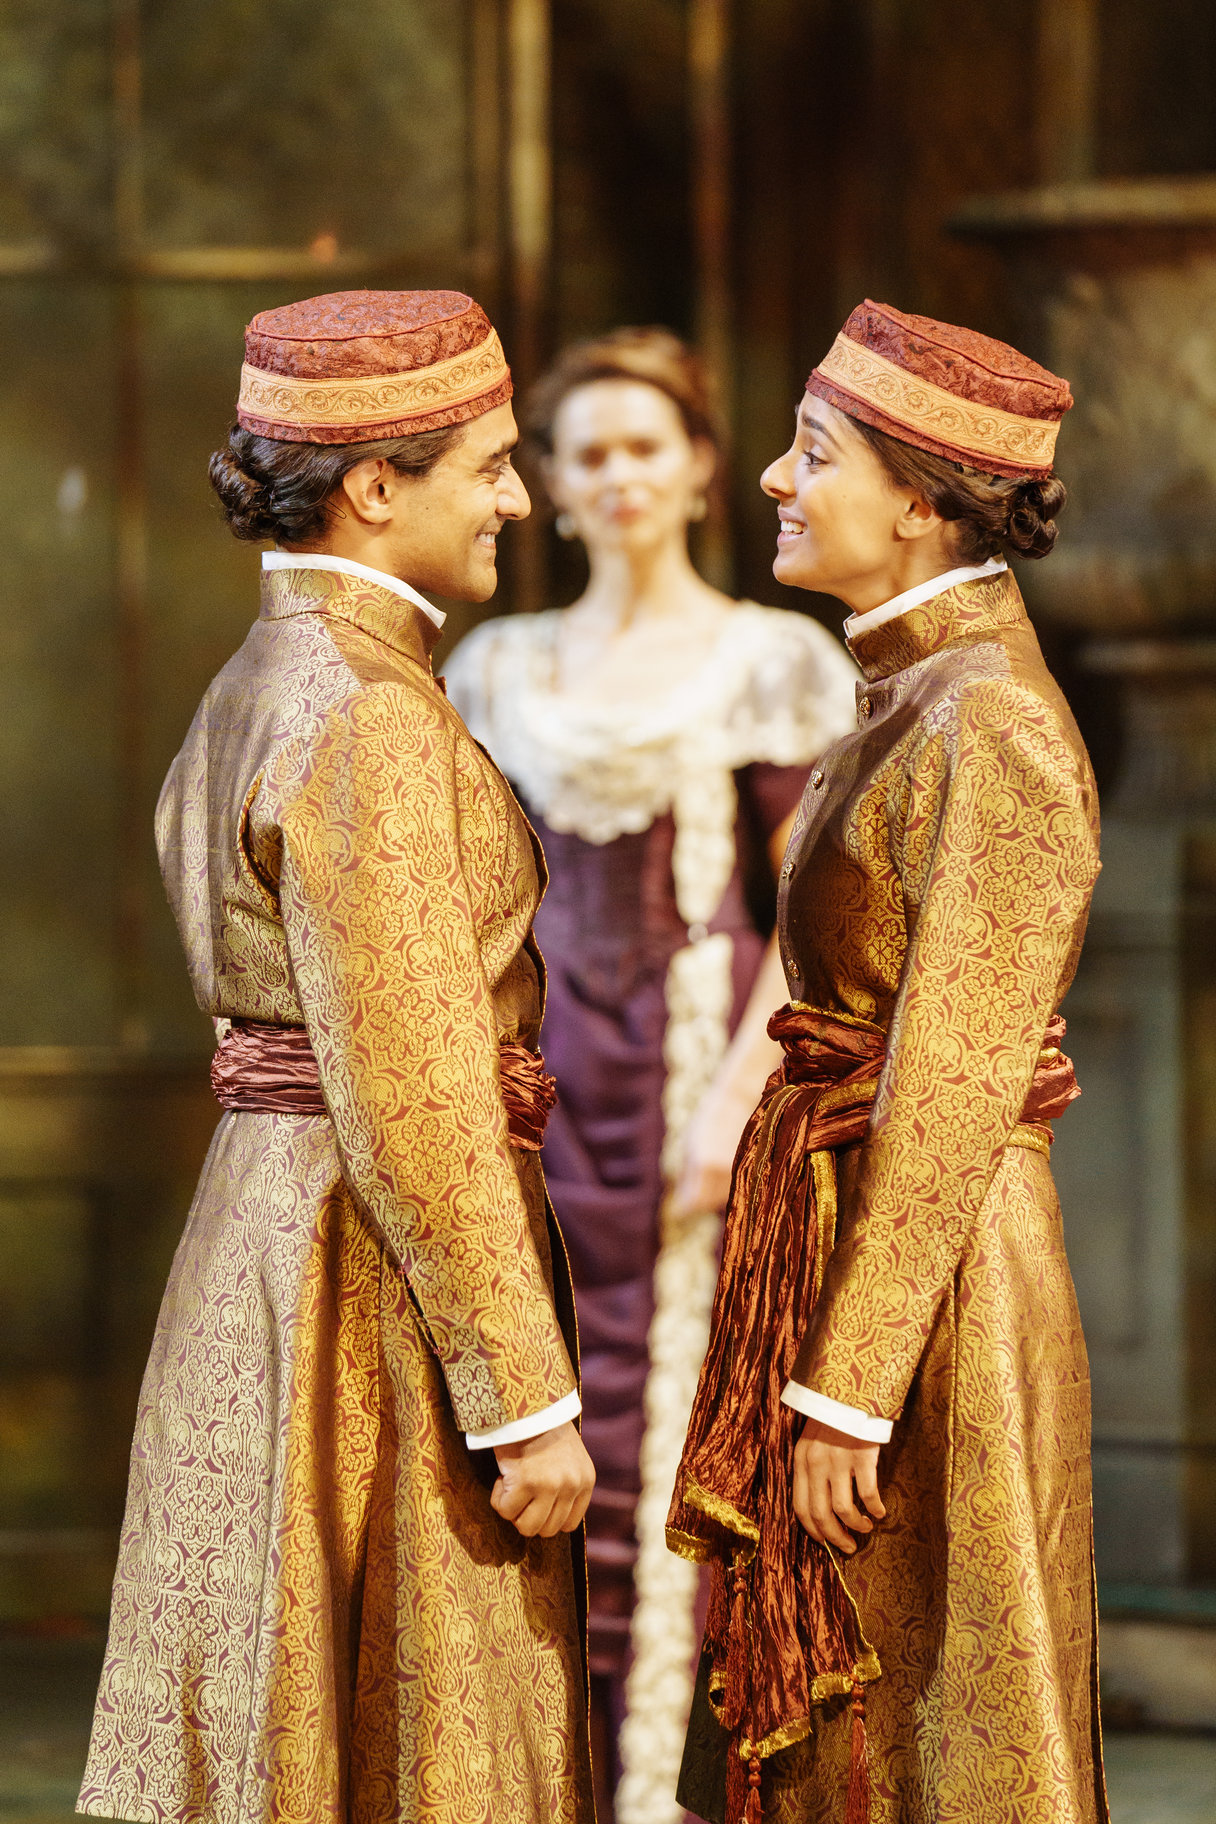 Viola and Sebastian stand face to face with Olivia in the background, both dressed in gold with identical hats, in the 2017 production of Twelfth Night.